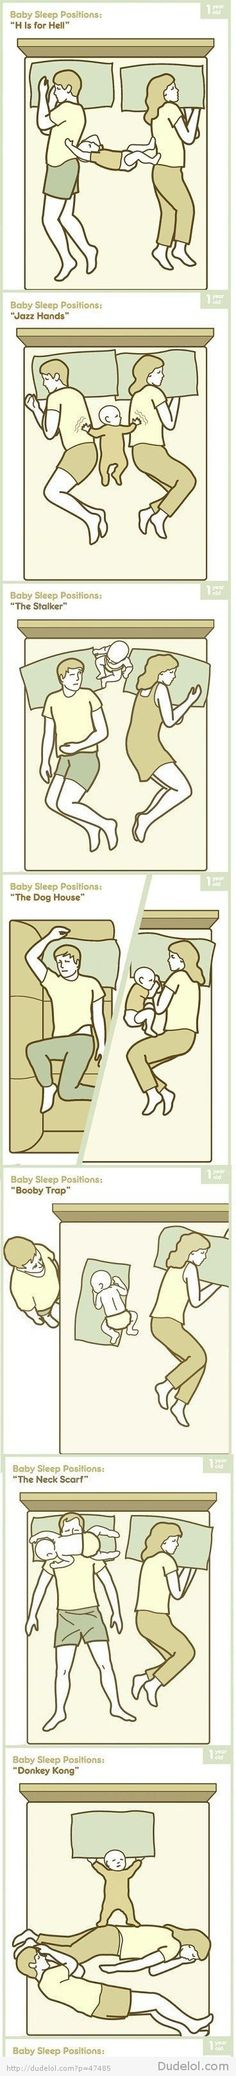 Baby Sleeping Positions! By far the funniest and truest thing in my life!!! LMFAO